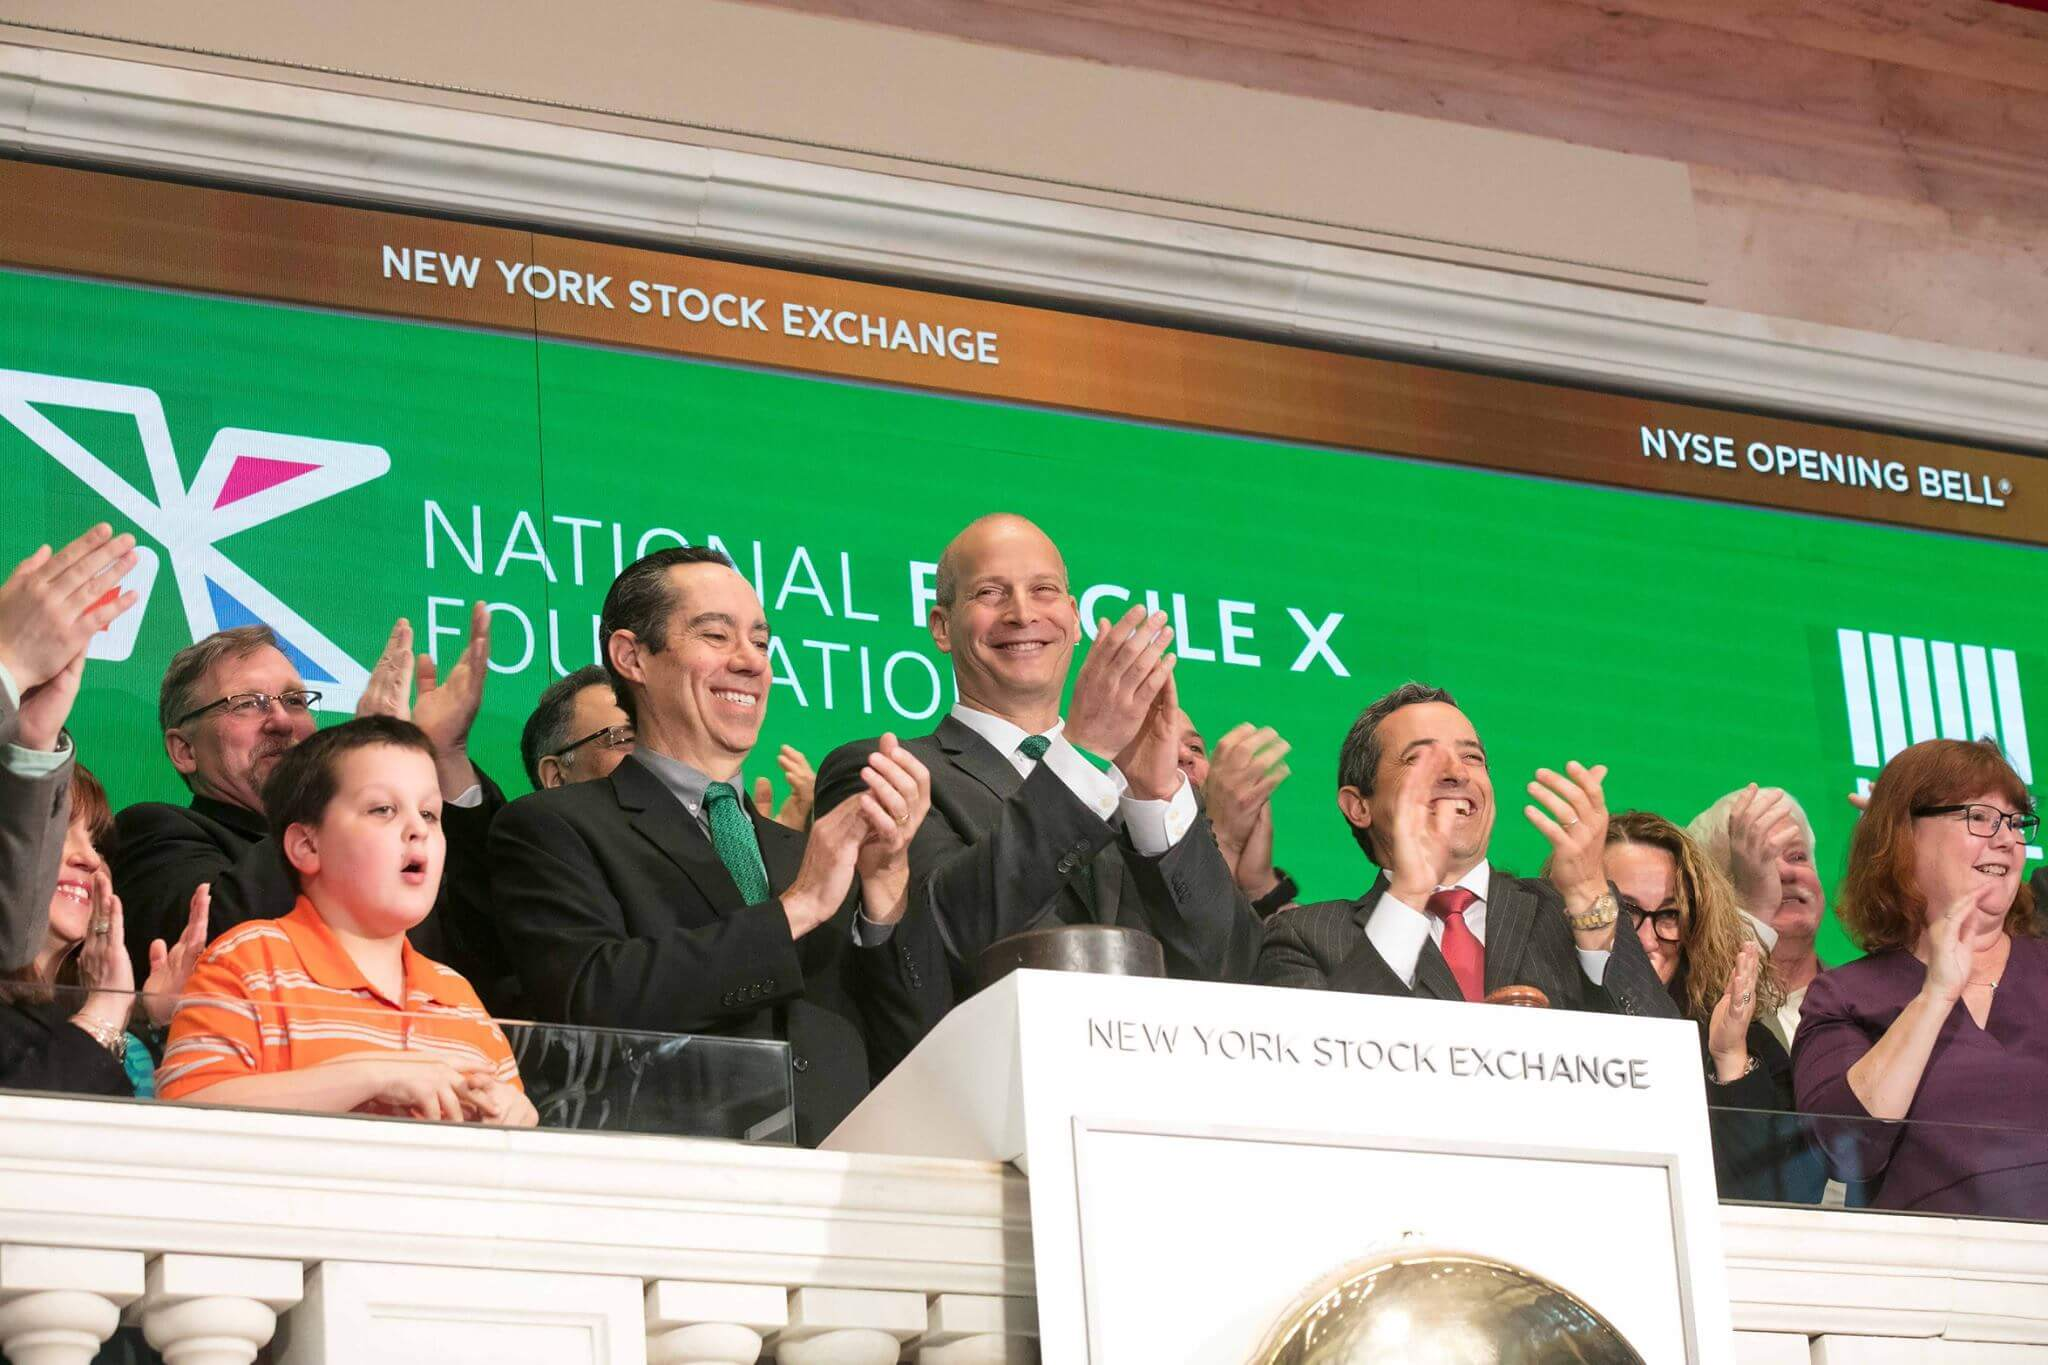 <b>New York Stock Exchange bell ringing</b> <br/> http://We%20were%20invited%20to%20the%20New%20York%20Stock%20Exchange%20to%20ring%20the%20opening%20bell,%20giving%20us%20the%20amazing%20chance%20to%20raise%20awareness%20for%20Fragile%20X.%20Our%20president%20Brian%20Silver%20and%20CEO%20Tony%20Ferlenda%20were%20joined%20at%20the%20podium%20by%2012%20other%20friends%20and%20family%20members%20of%20the%20community.%20a%20class=portfolio-content-link%20href=/2017/foundation/annoucements/nfxf-rings-nyse-opening-bell-video/Watch%20the%20Video/a